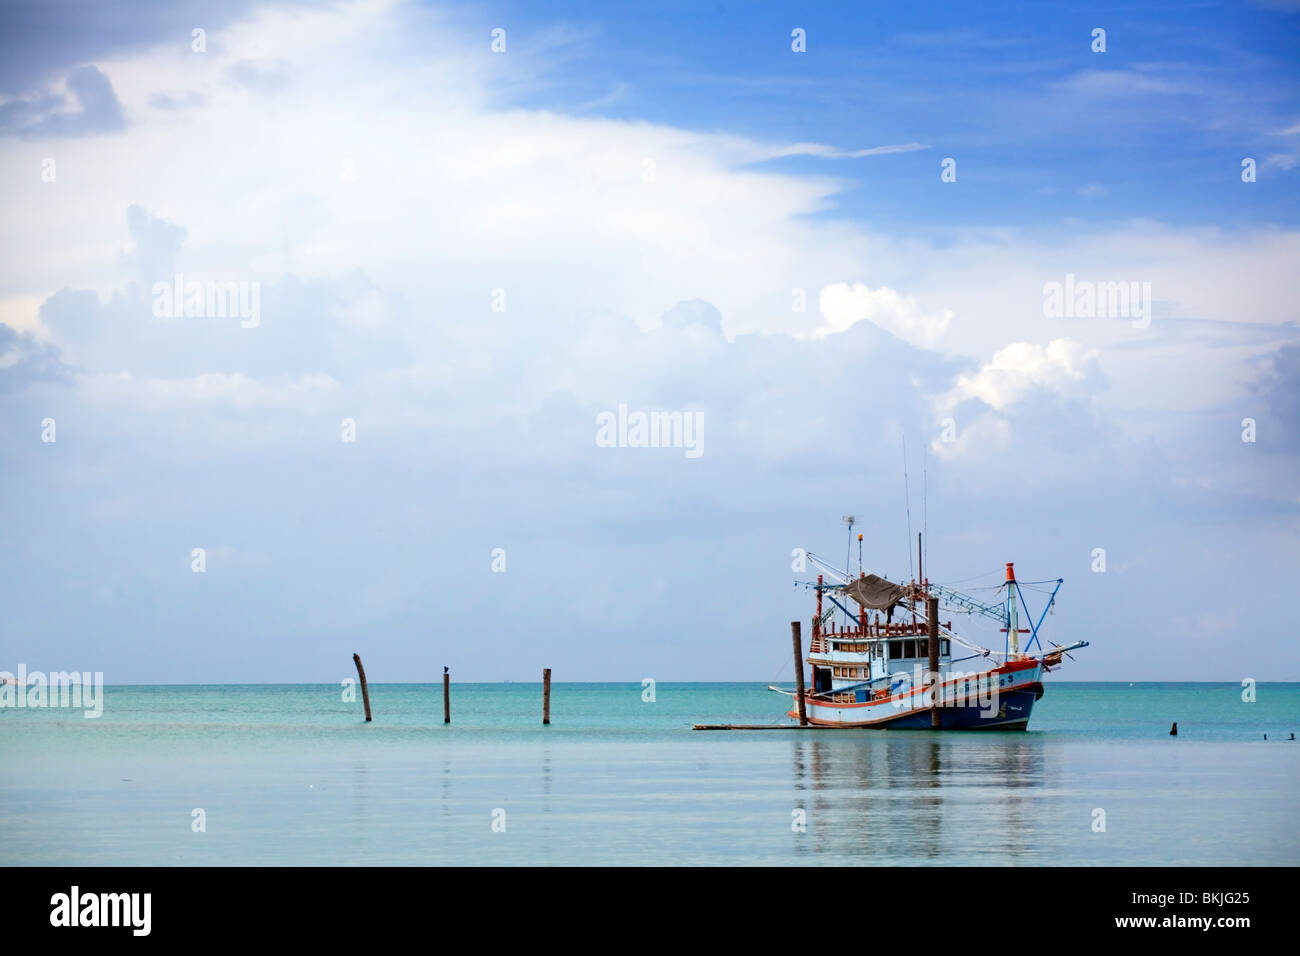 A single fishing boat off the coast of Thailand - Stock Image